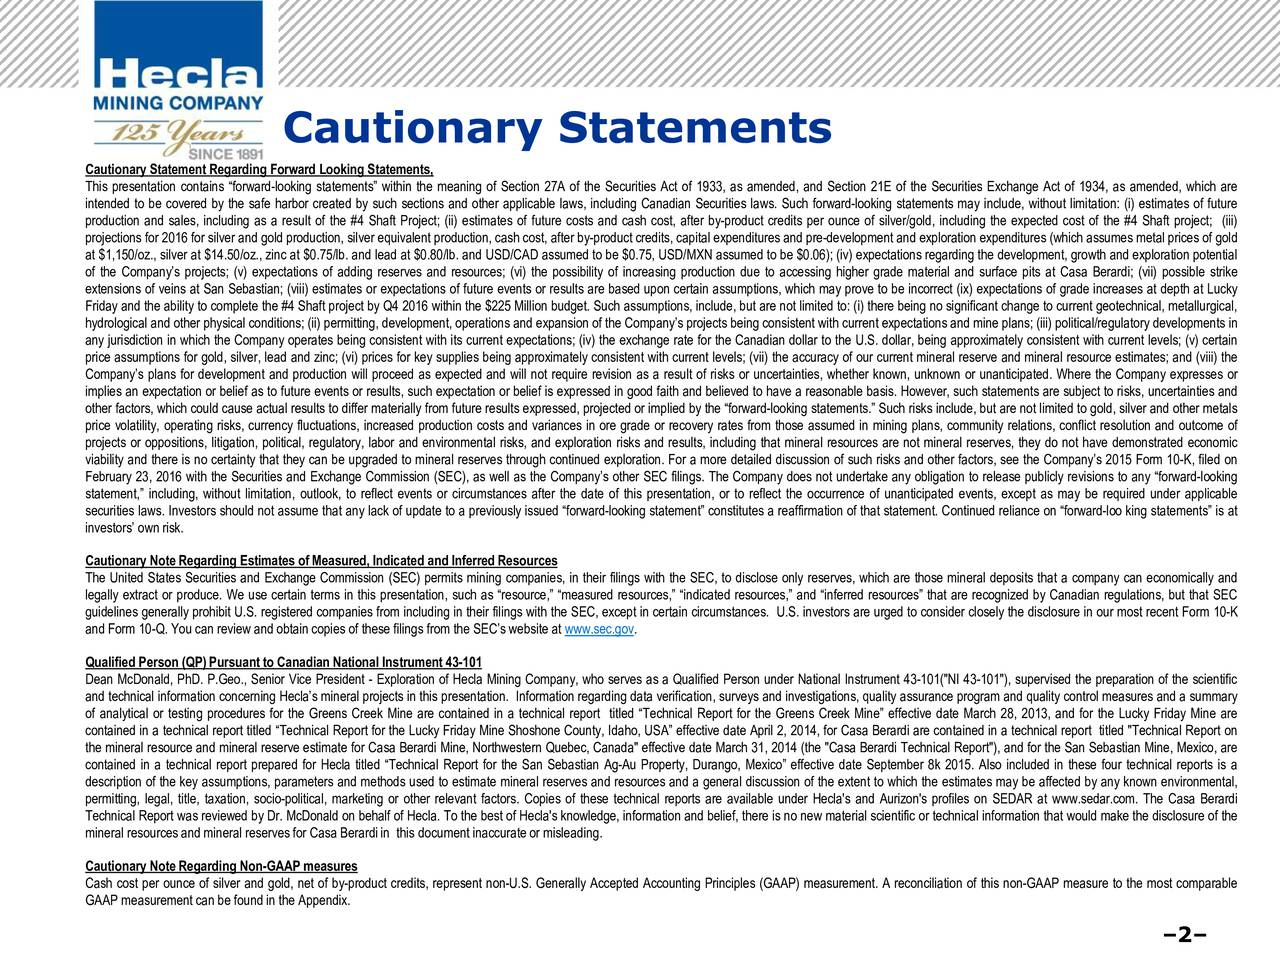 Cautionary Statement Regarding Forward Looking Statements, This presentation contains forward-looking statements within the meaning of Section 27A of the Securities Act of 1933, as amended, and Section 21E of the Securities Exchange Act of 1934, as amended, which are intended to be covered by the safe harbor created by such sections and other applicable laws, including Canadian Securities laws. Such forward-looking statements may include, without limitation: (i) estimates of future production and sales, including as a result of the #4 Shaft Project; (ii) estimates of future costs and cash cost, after by-product credits per ounce of silver/gold, including the expected cost of the #4 Shaft project; (iii) projections for 2016 for silver and gold production, silver equivalent production, cash cost, after by-product credits, capital expenditures and pre-development and exploration expenditures (which assumes metal prices of gold at $1,150/oz., silver at $14.50/oz., zinc at $0.75/lb. and lead at $0.80/lb. and USD/CAD assumed to be $0.75, USD/MXN assumed to be $0.06); (iv) expectations regarding the development, growth and exploration potential of the Companys projects; (v) expectations of adding reserves and resources; (vi) the possibility of increasing production due to accessing higher grade material and surface pits at Casa Berardi; (vii) possible strike extensions of veins at San Sebastian; (viii) estimates or expectations of future events or results are based upon certain assumptions, which may prove to be incorrect (ix) expectations of grade increases at depth at Lucky Friday and the ability to complete the #4 Shaft project by Q4 2016 within the $225 Million budget. Such assumptions, include, but are not limited to: (i) there being no significant change to current geotechnical, metallurgical, hydrological and other physical conditions; (ii) permitting, development, operations and expansion of the Companys projects being consistent with current expectations and mine 